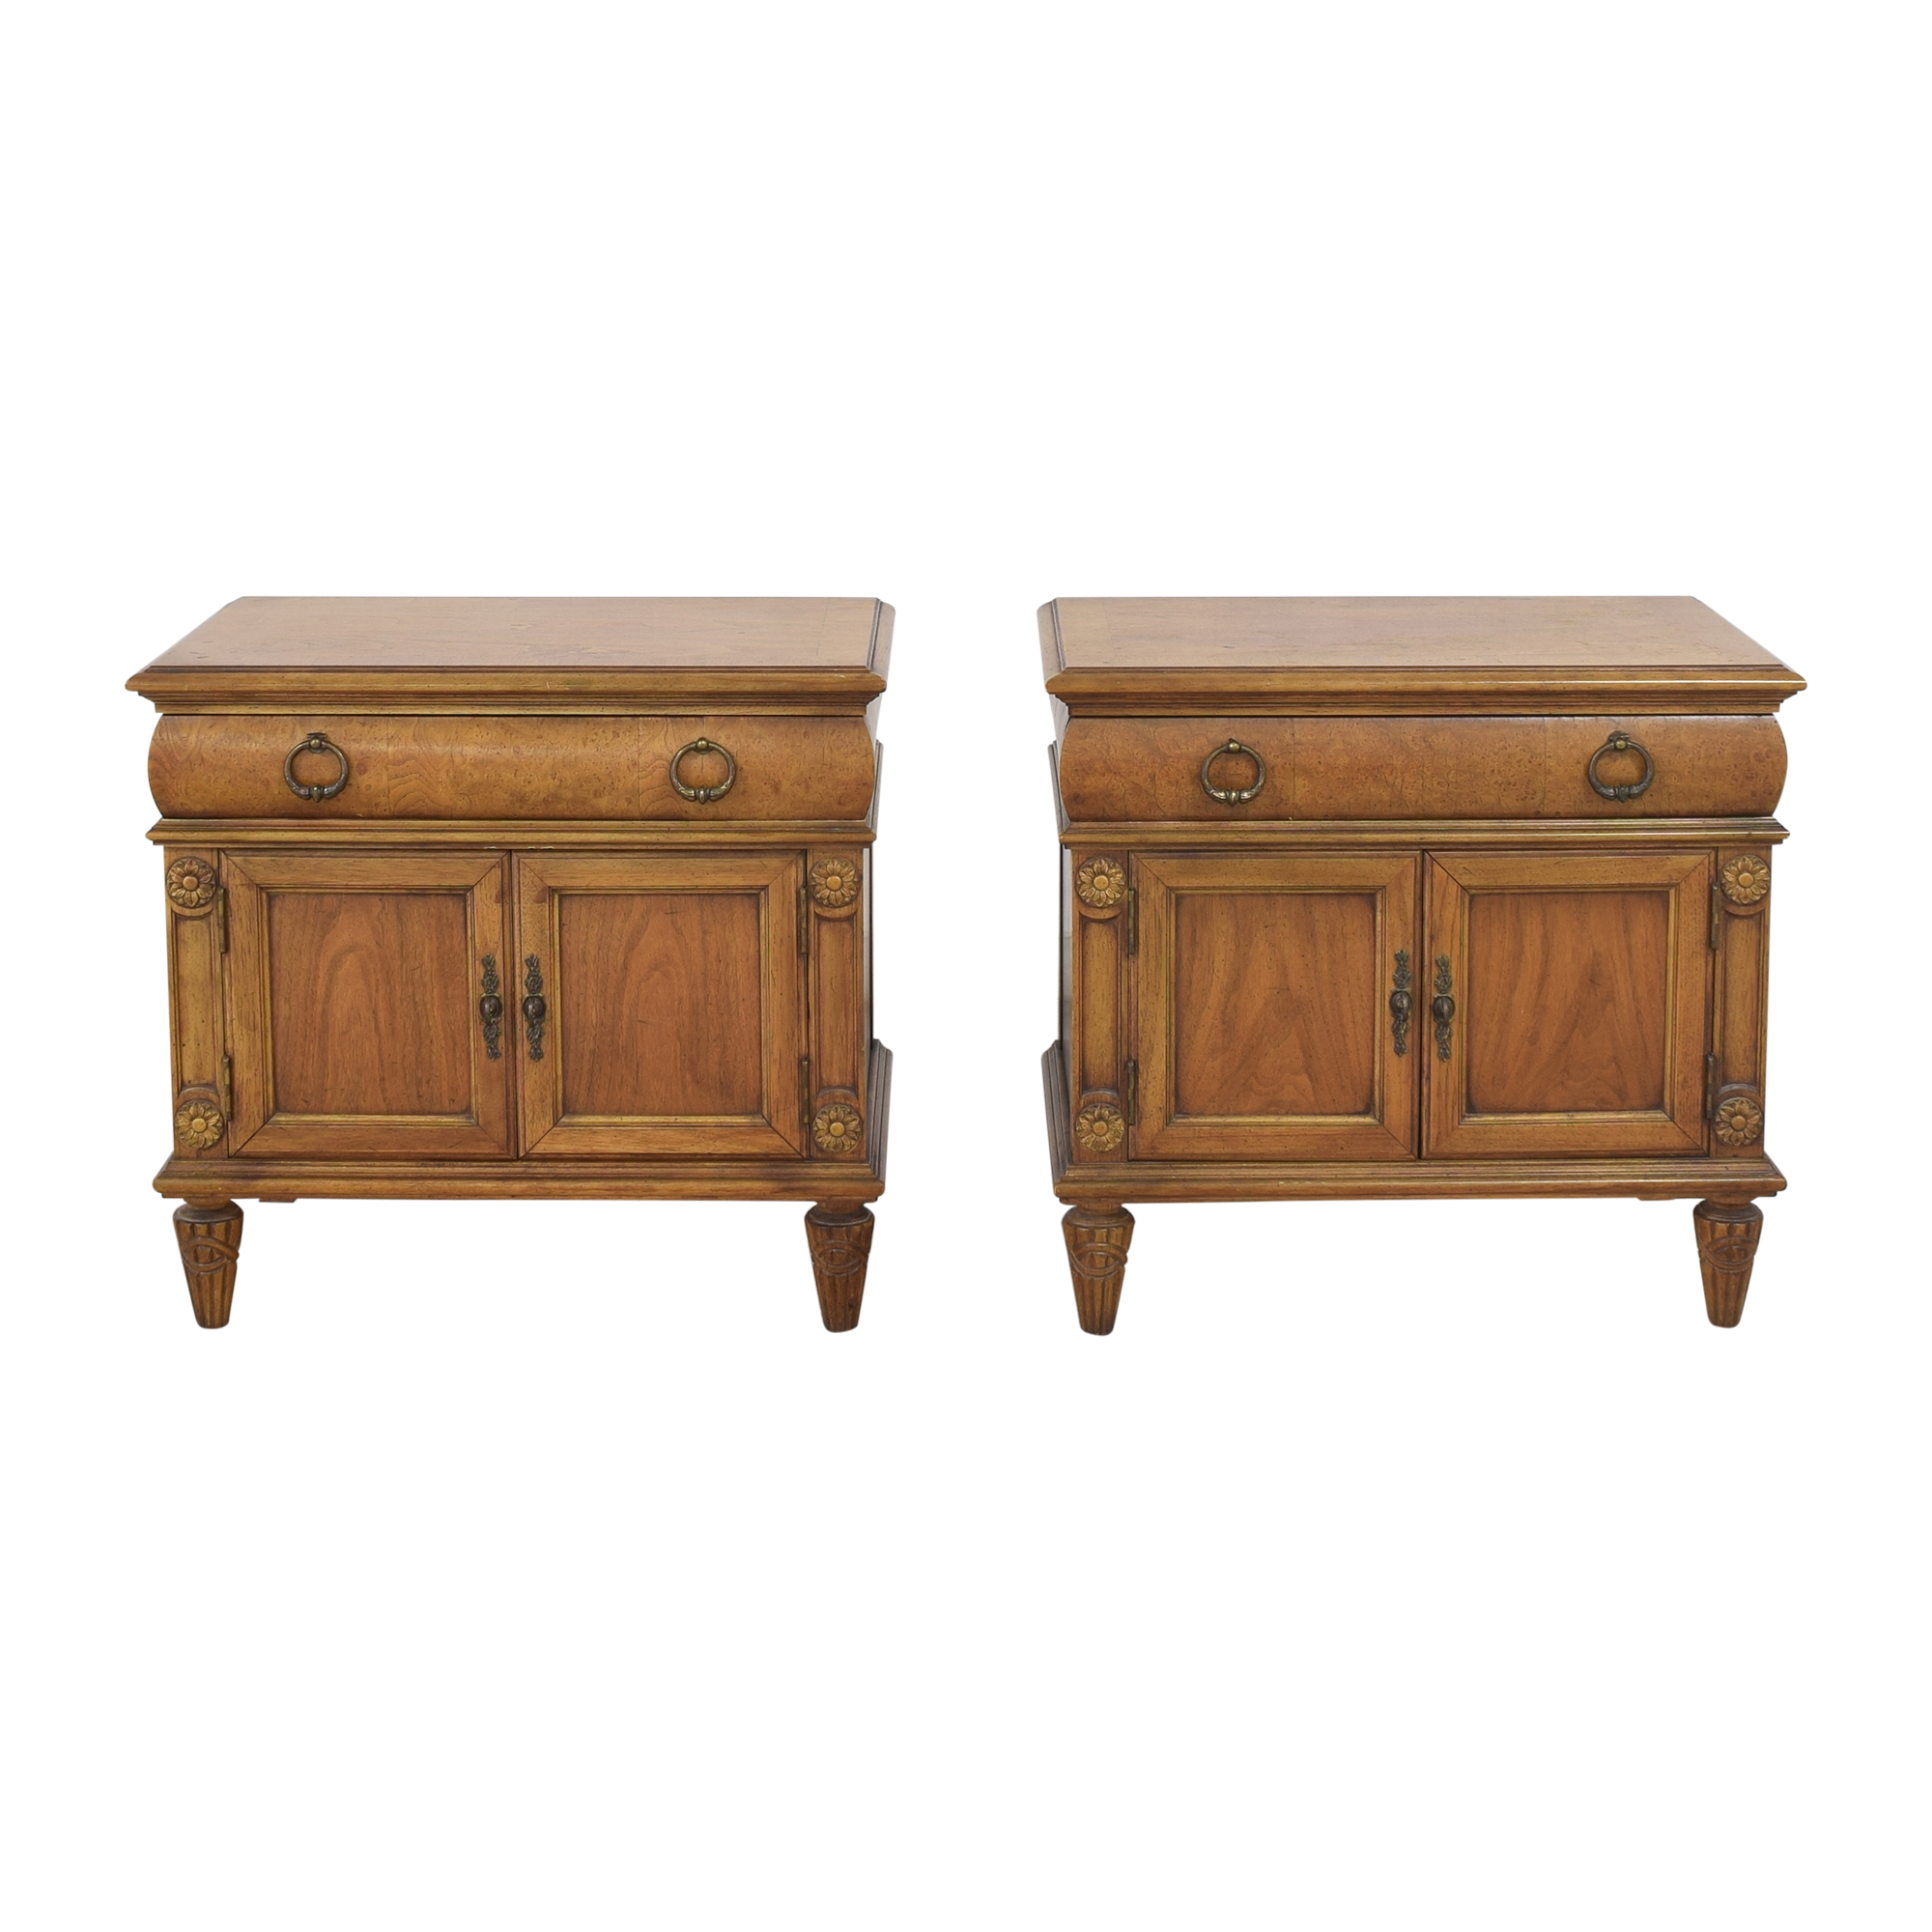 Thomasville Thomasville Two Door Nightstands on sale